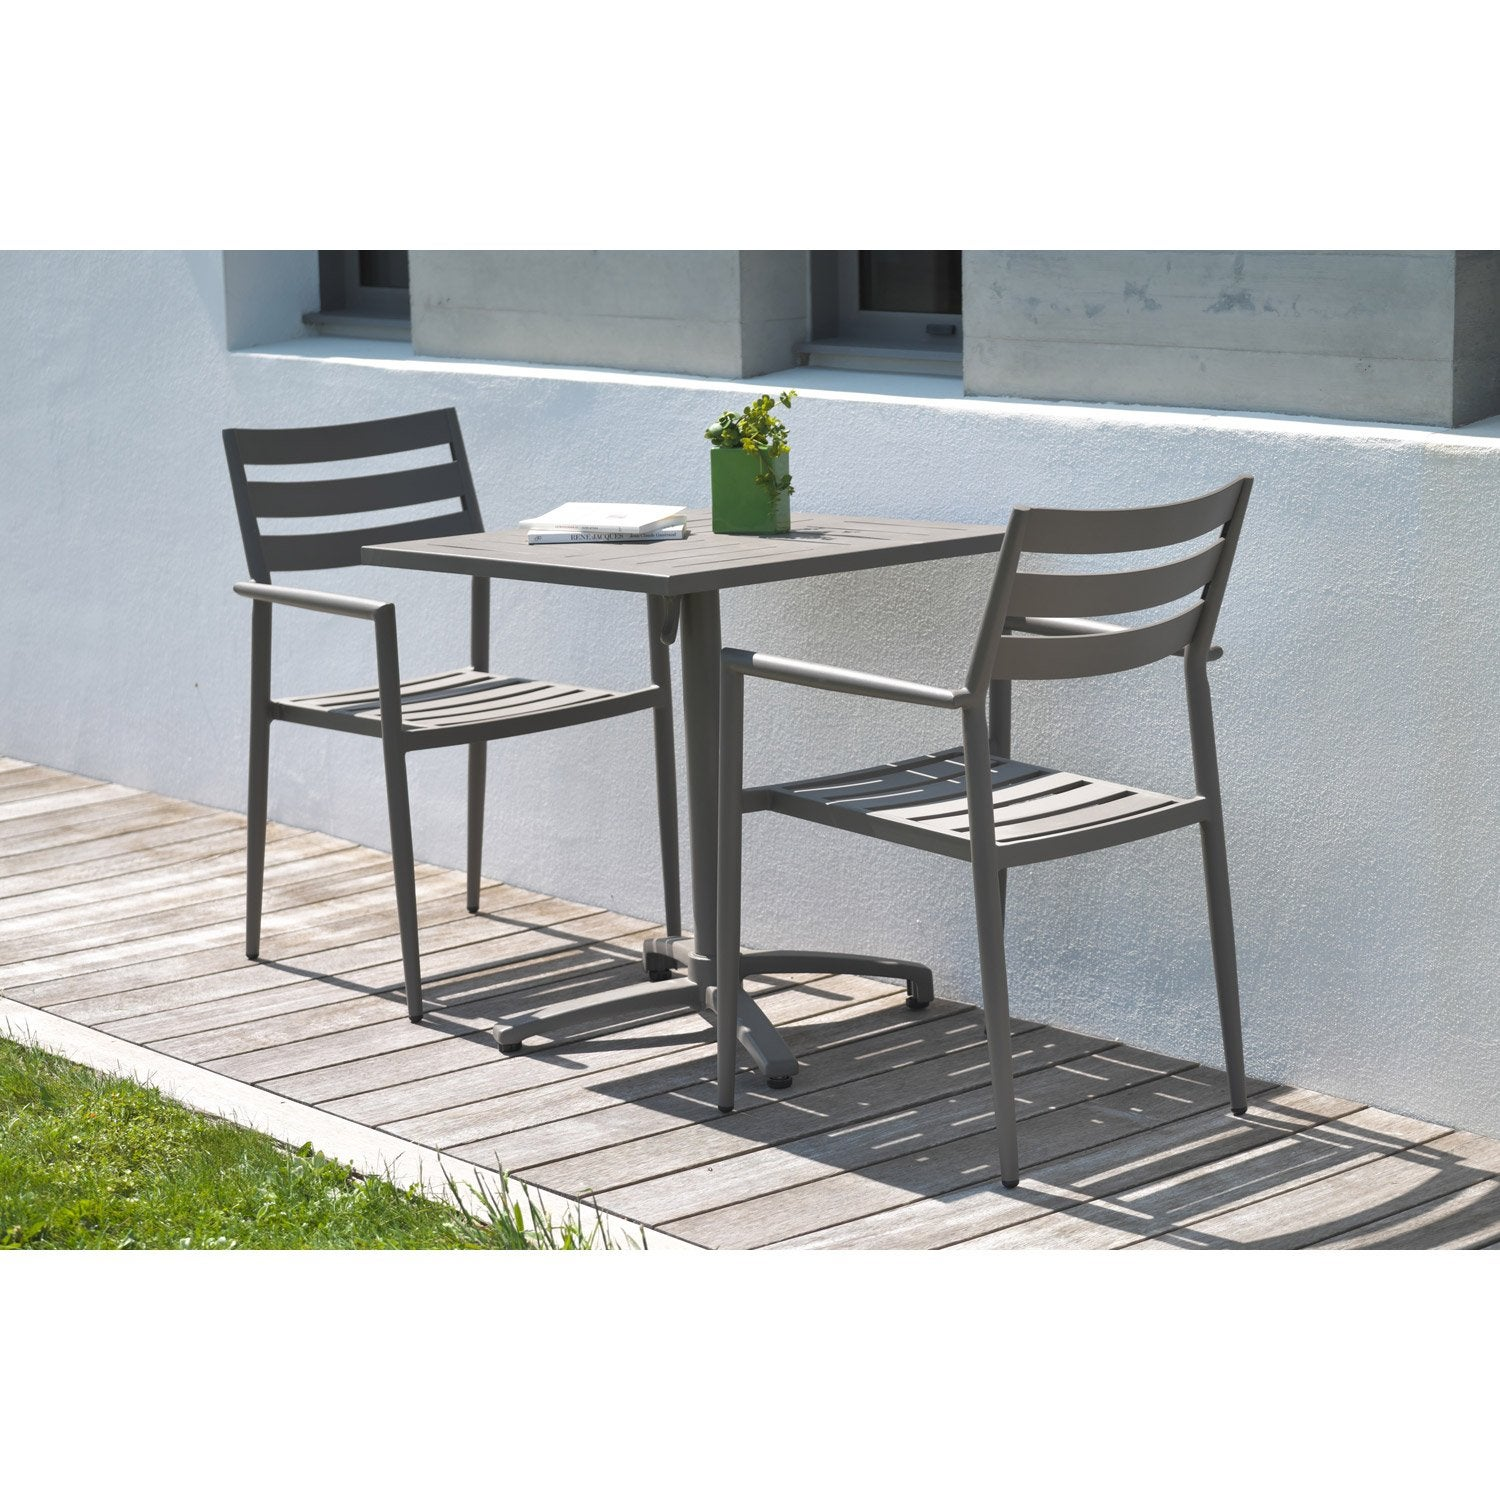 Etonnant table jardin 2 personnes 5 leroy merlin for Table exterieur 2 personnes